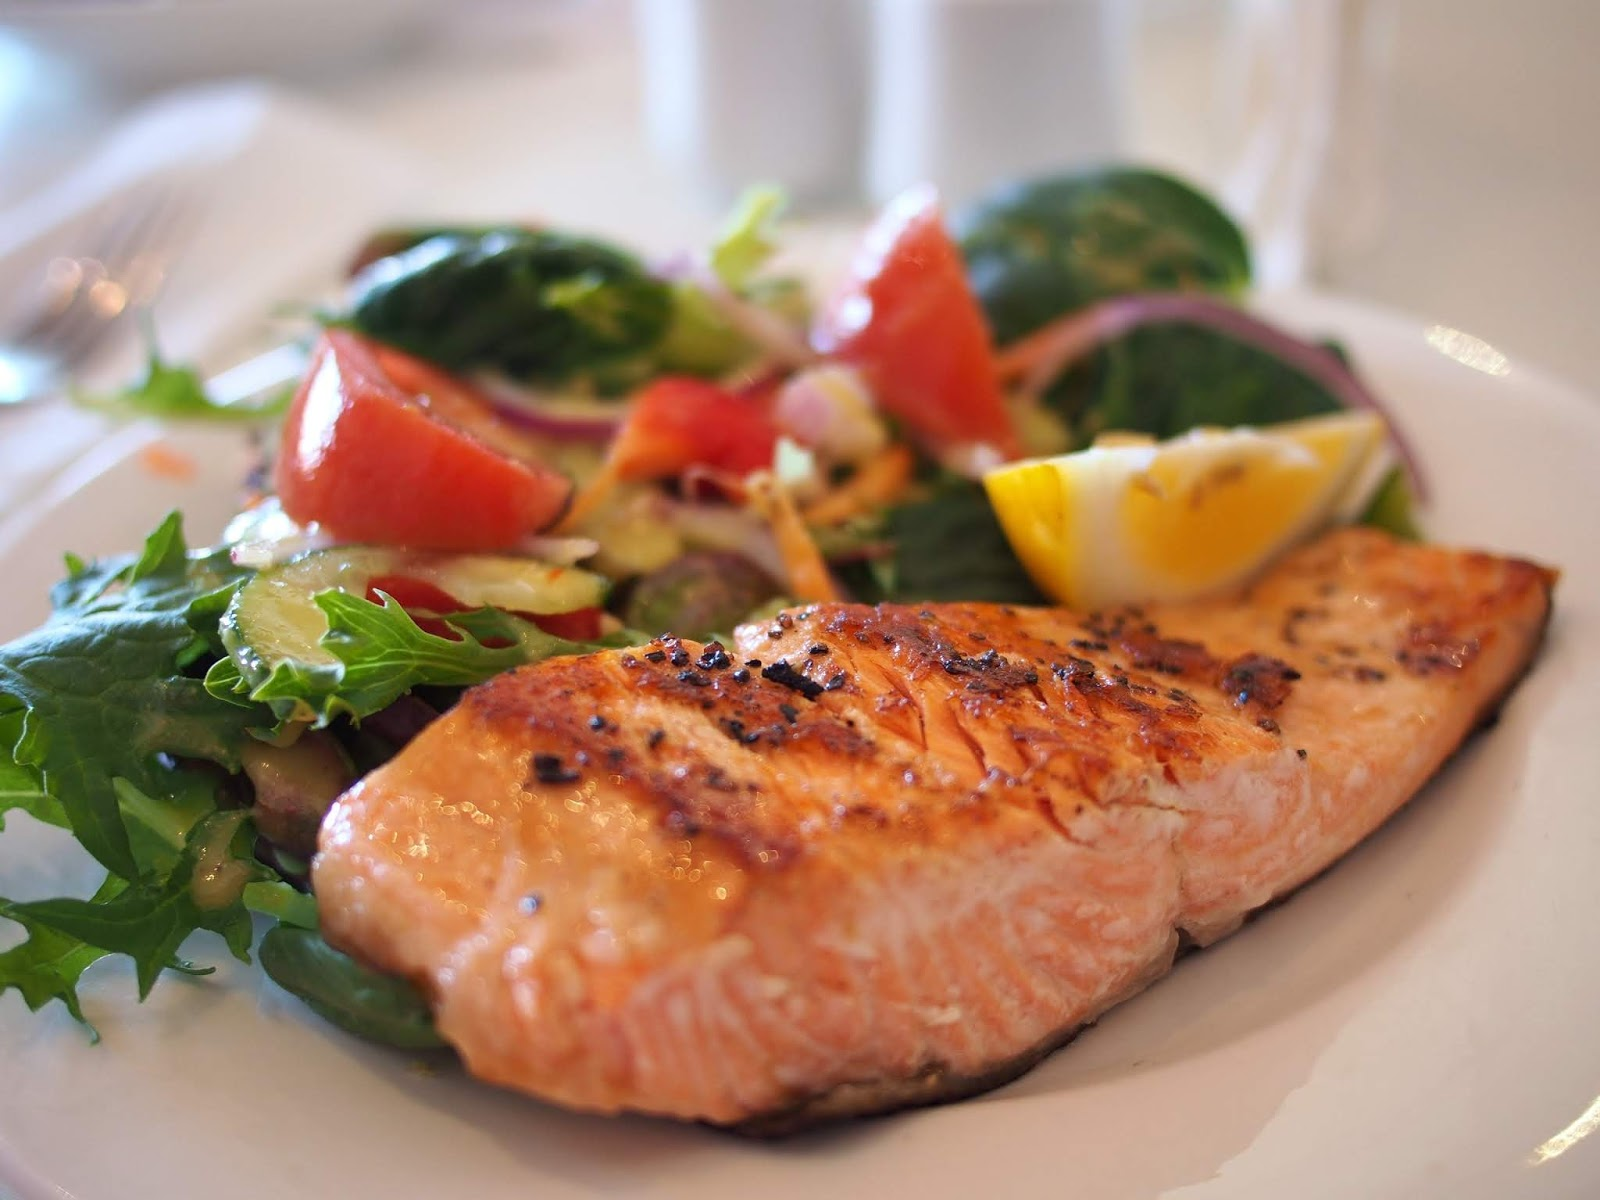 10 Foods That Help You to Concentrate Better and Their Benefits - Salmon